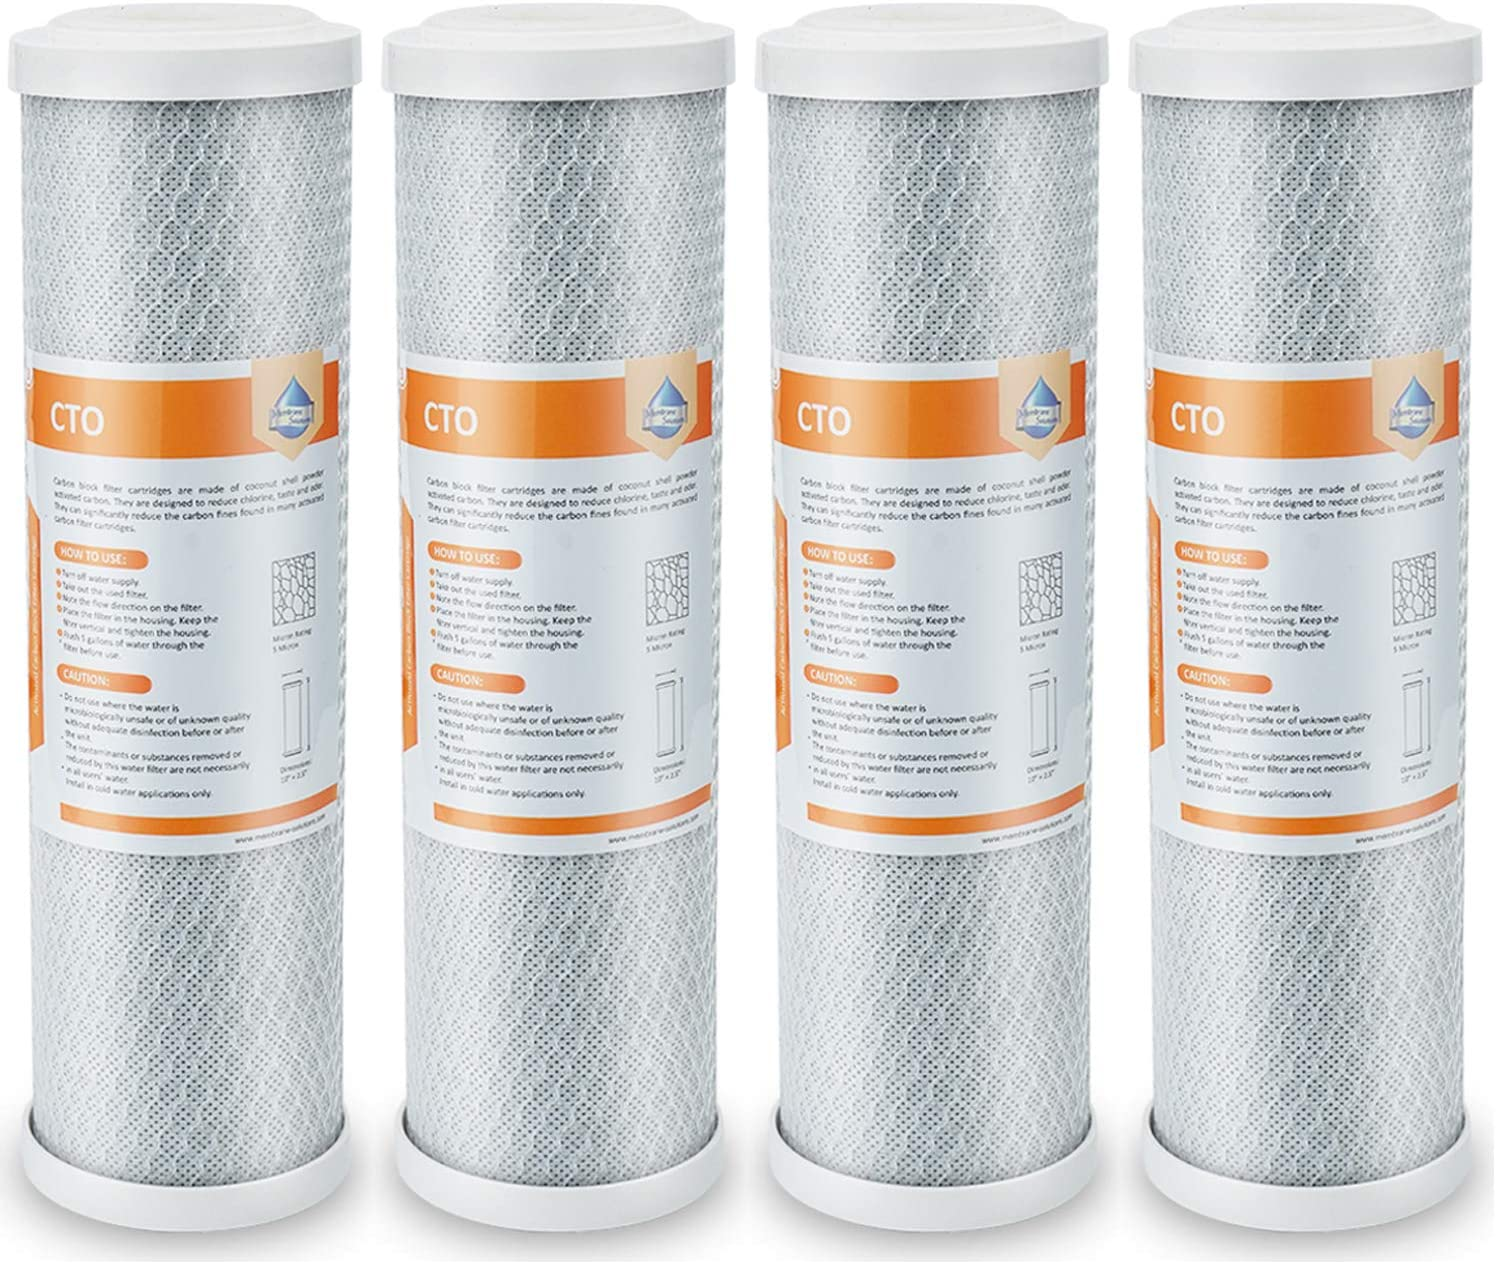 """Membrane Solutions 5 Micron Carbon Block Water Filter Replacement 10""""x2.5"""",Universal Coconut Shell CTO Sediment Filter Cartridge - Whole House Under Sink and Reverse Osmosis System - 4 Pack"""